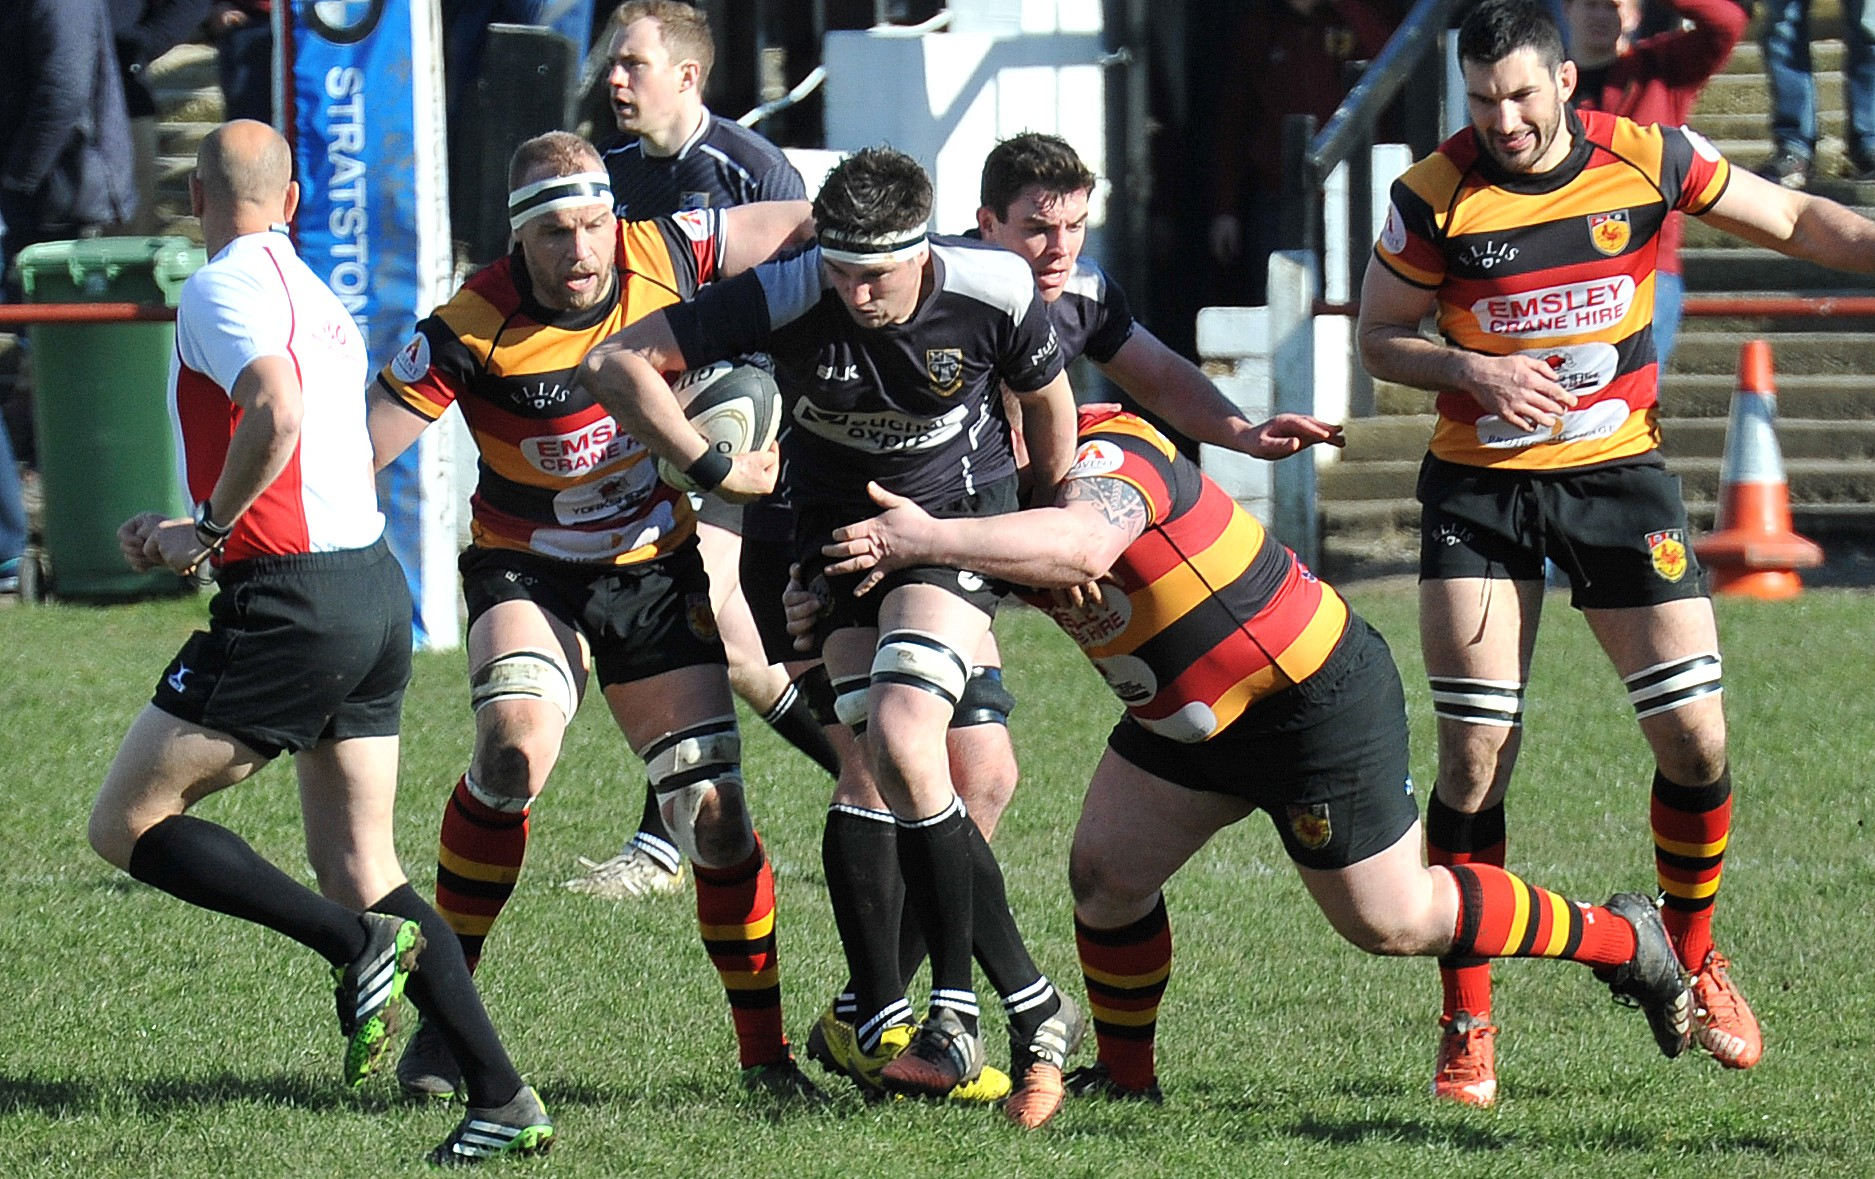 Otley skipper Freddie Watson says that they need to be more clinical when they are in charge